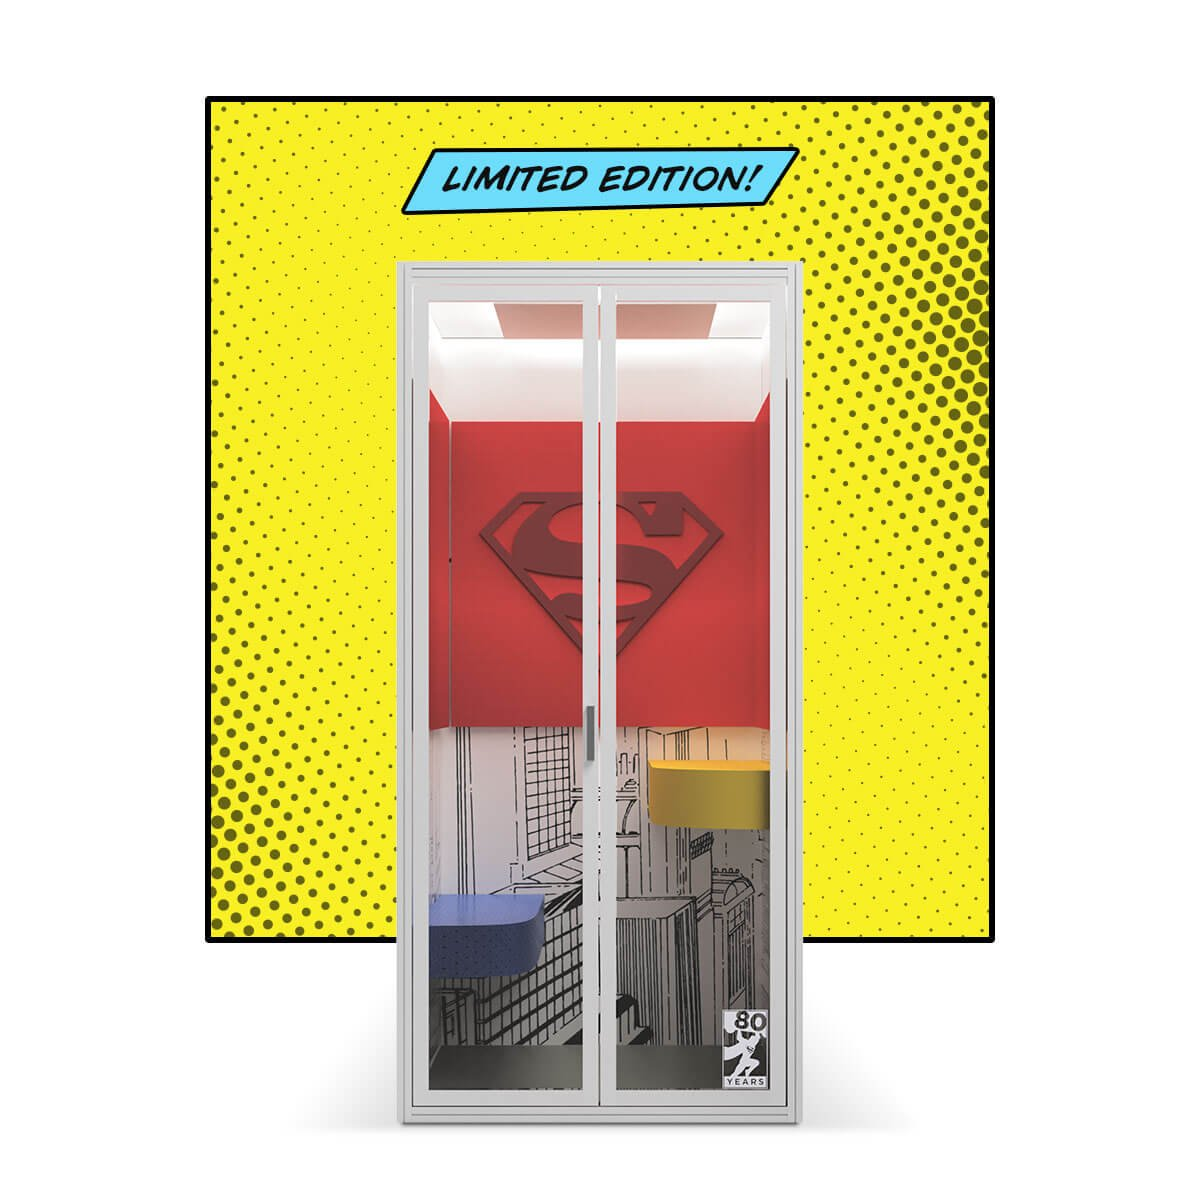 Superman Phone Booth Limited Edition Cubicall